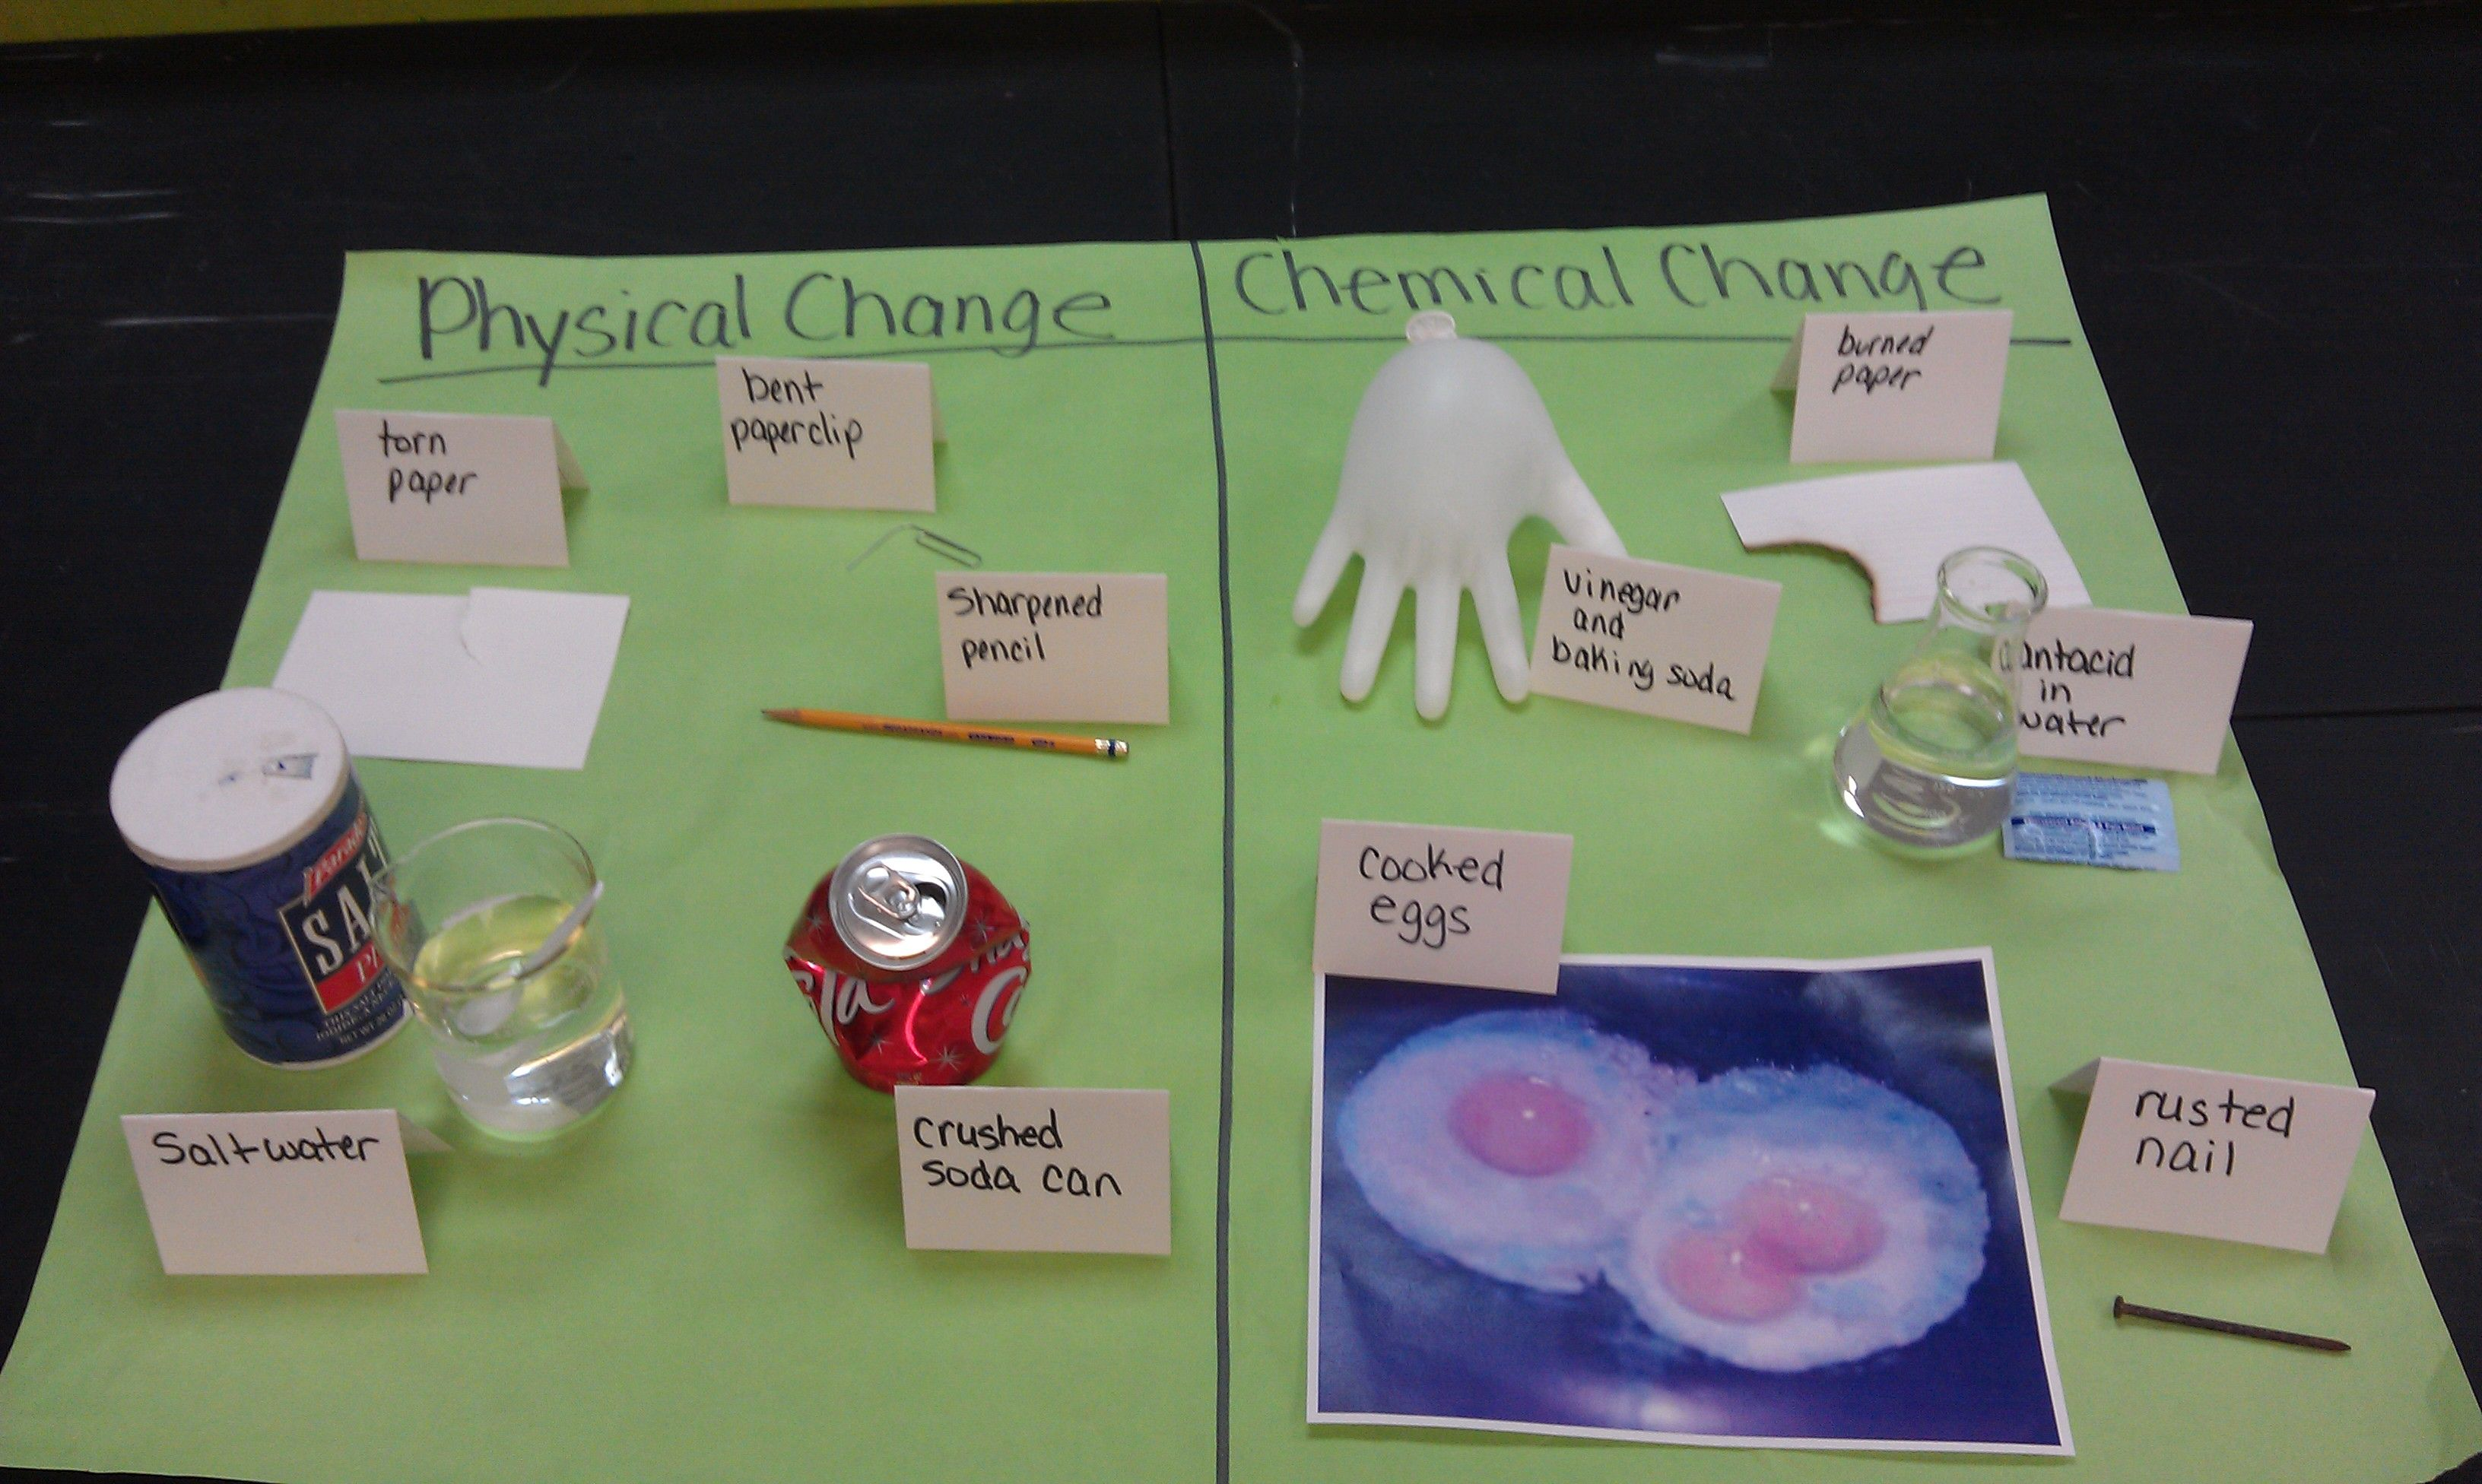 best images about chemical change physical change 17 best images about chemical change physical change alkali metal physical change and science fair